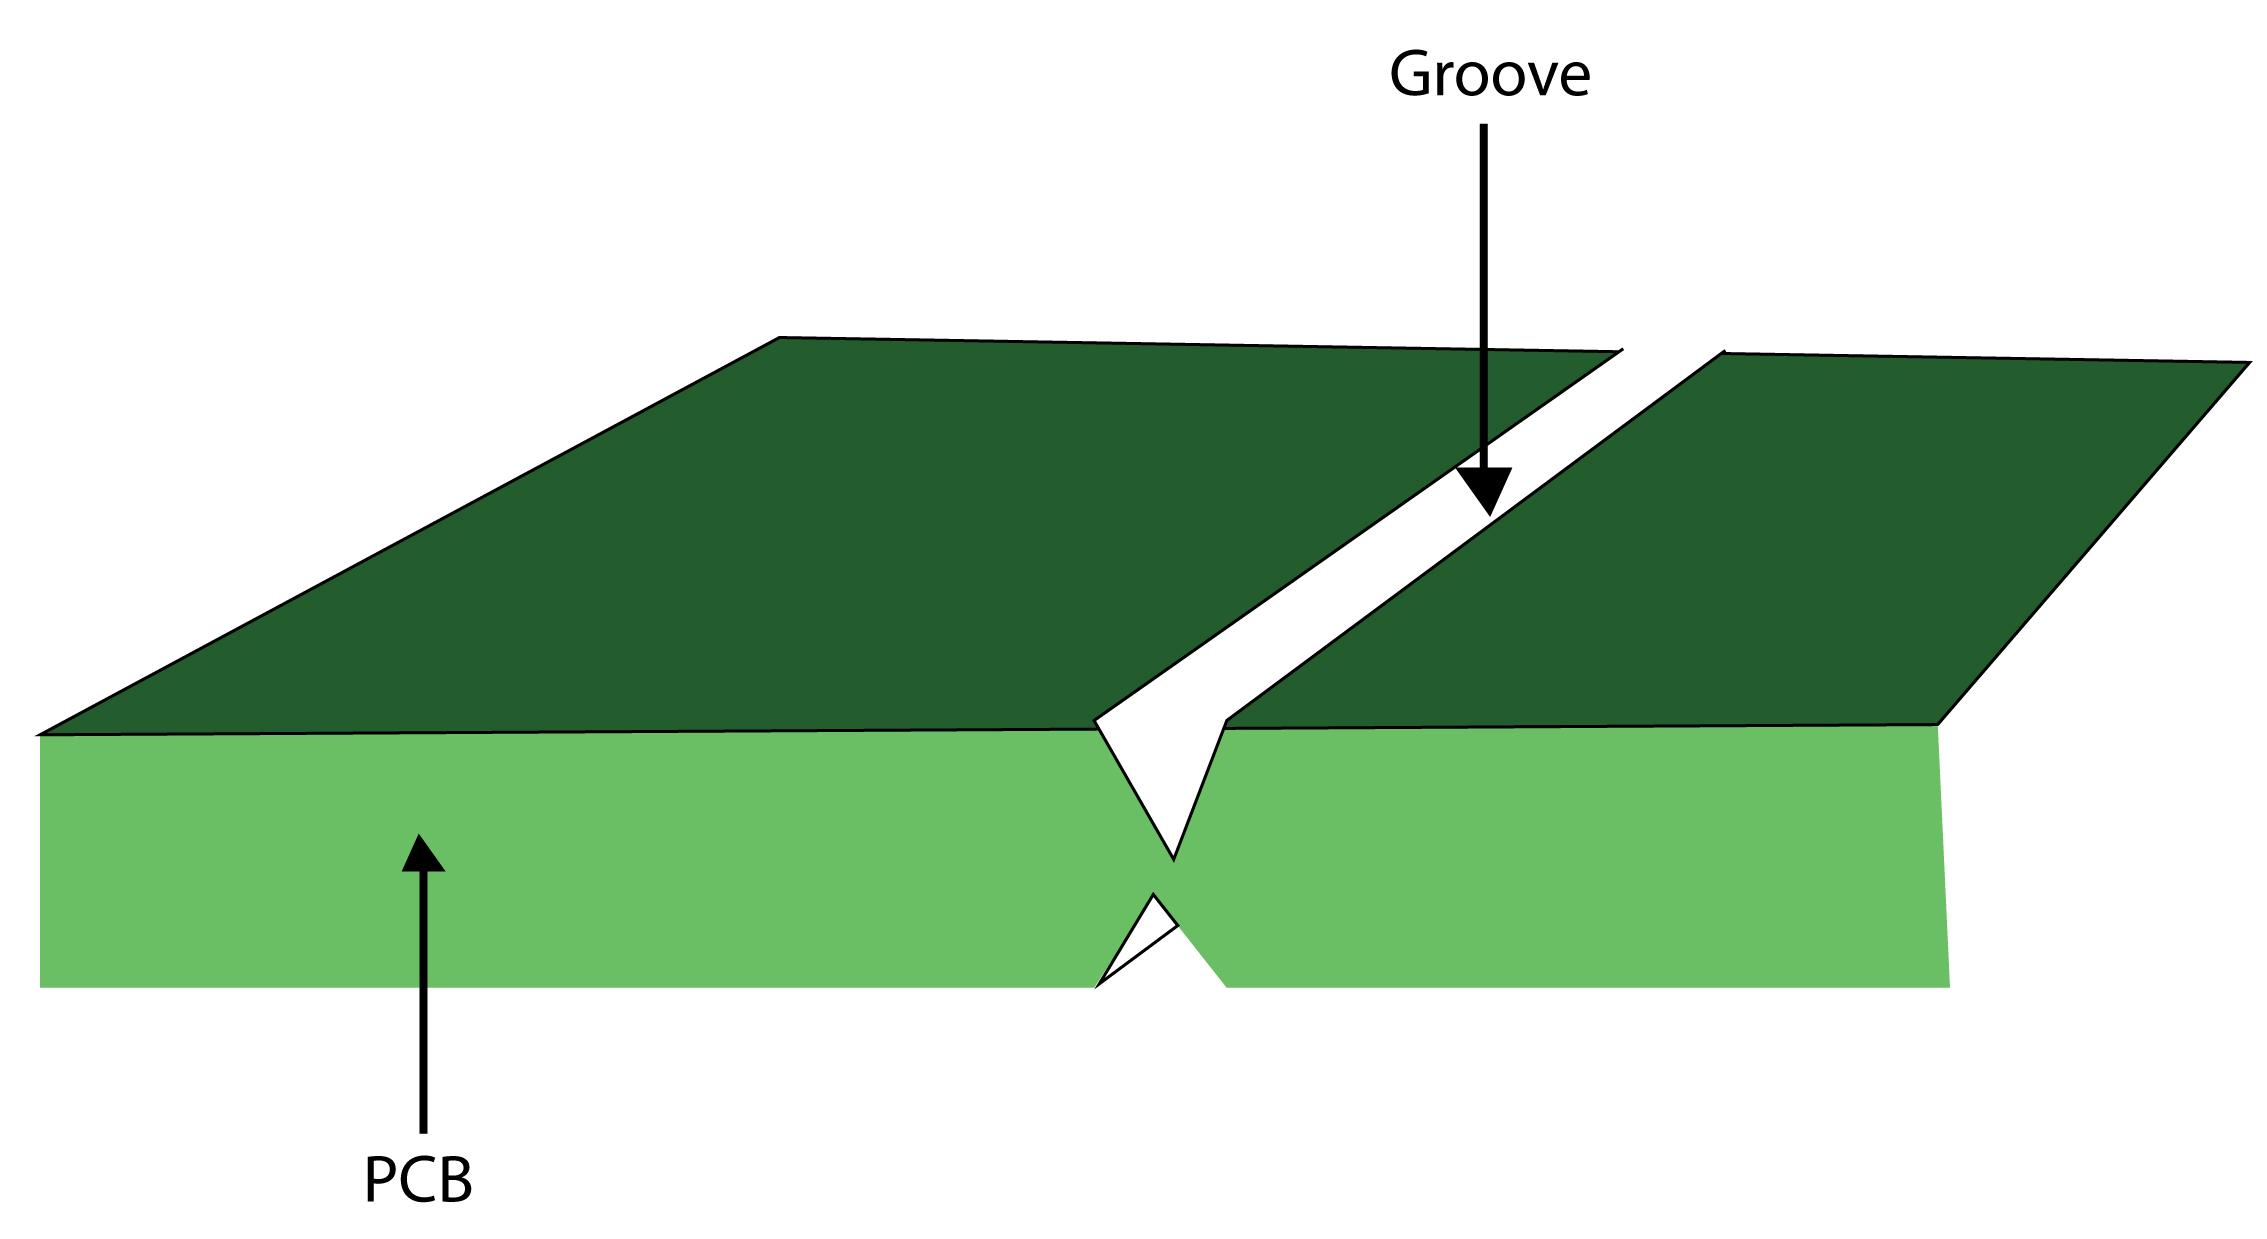 PCB with groove